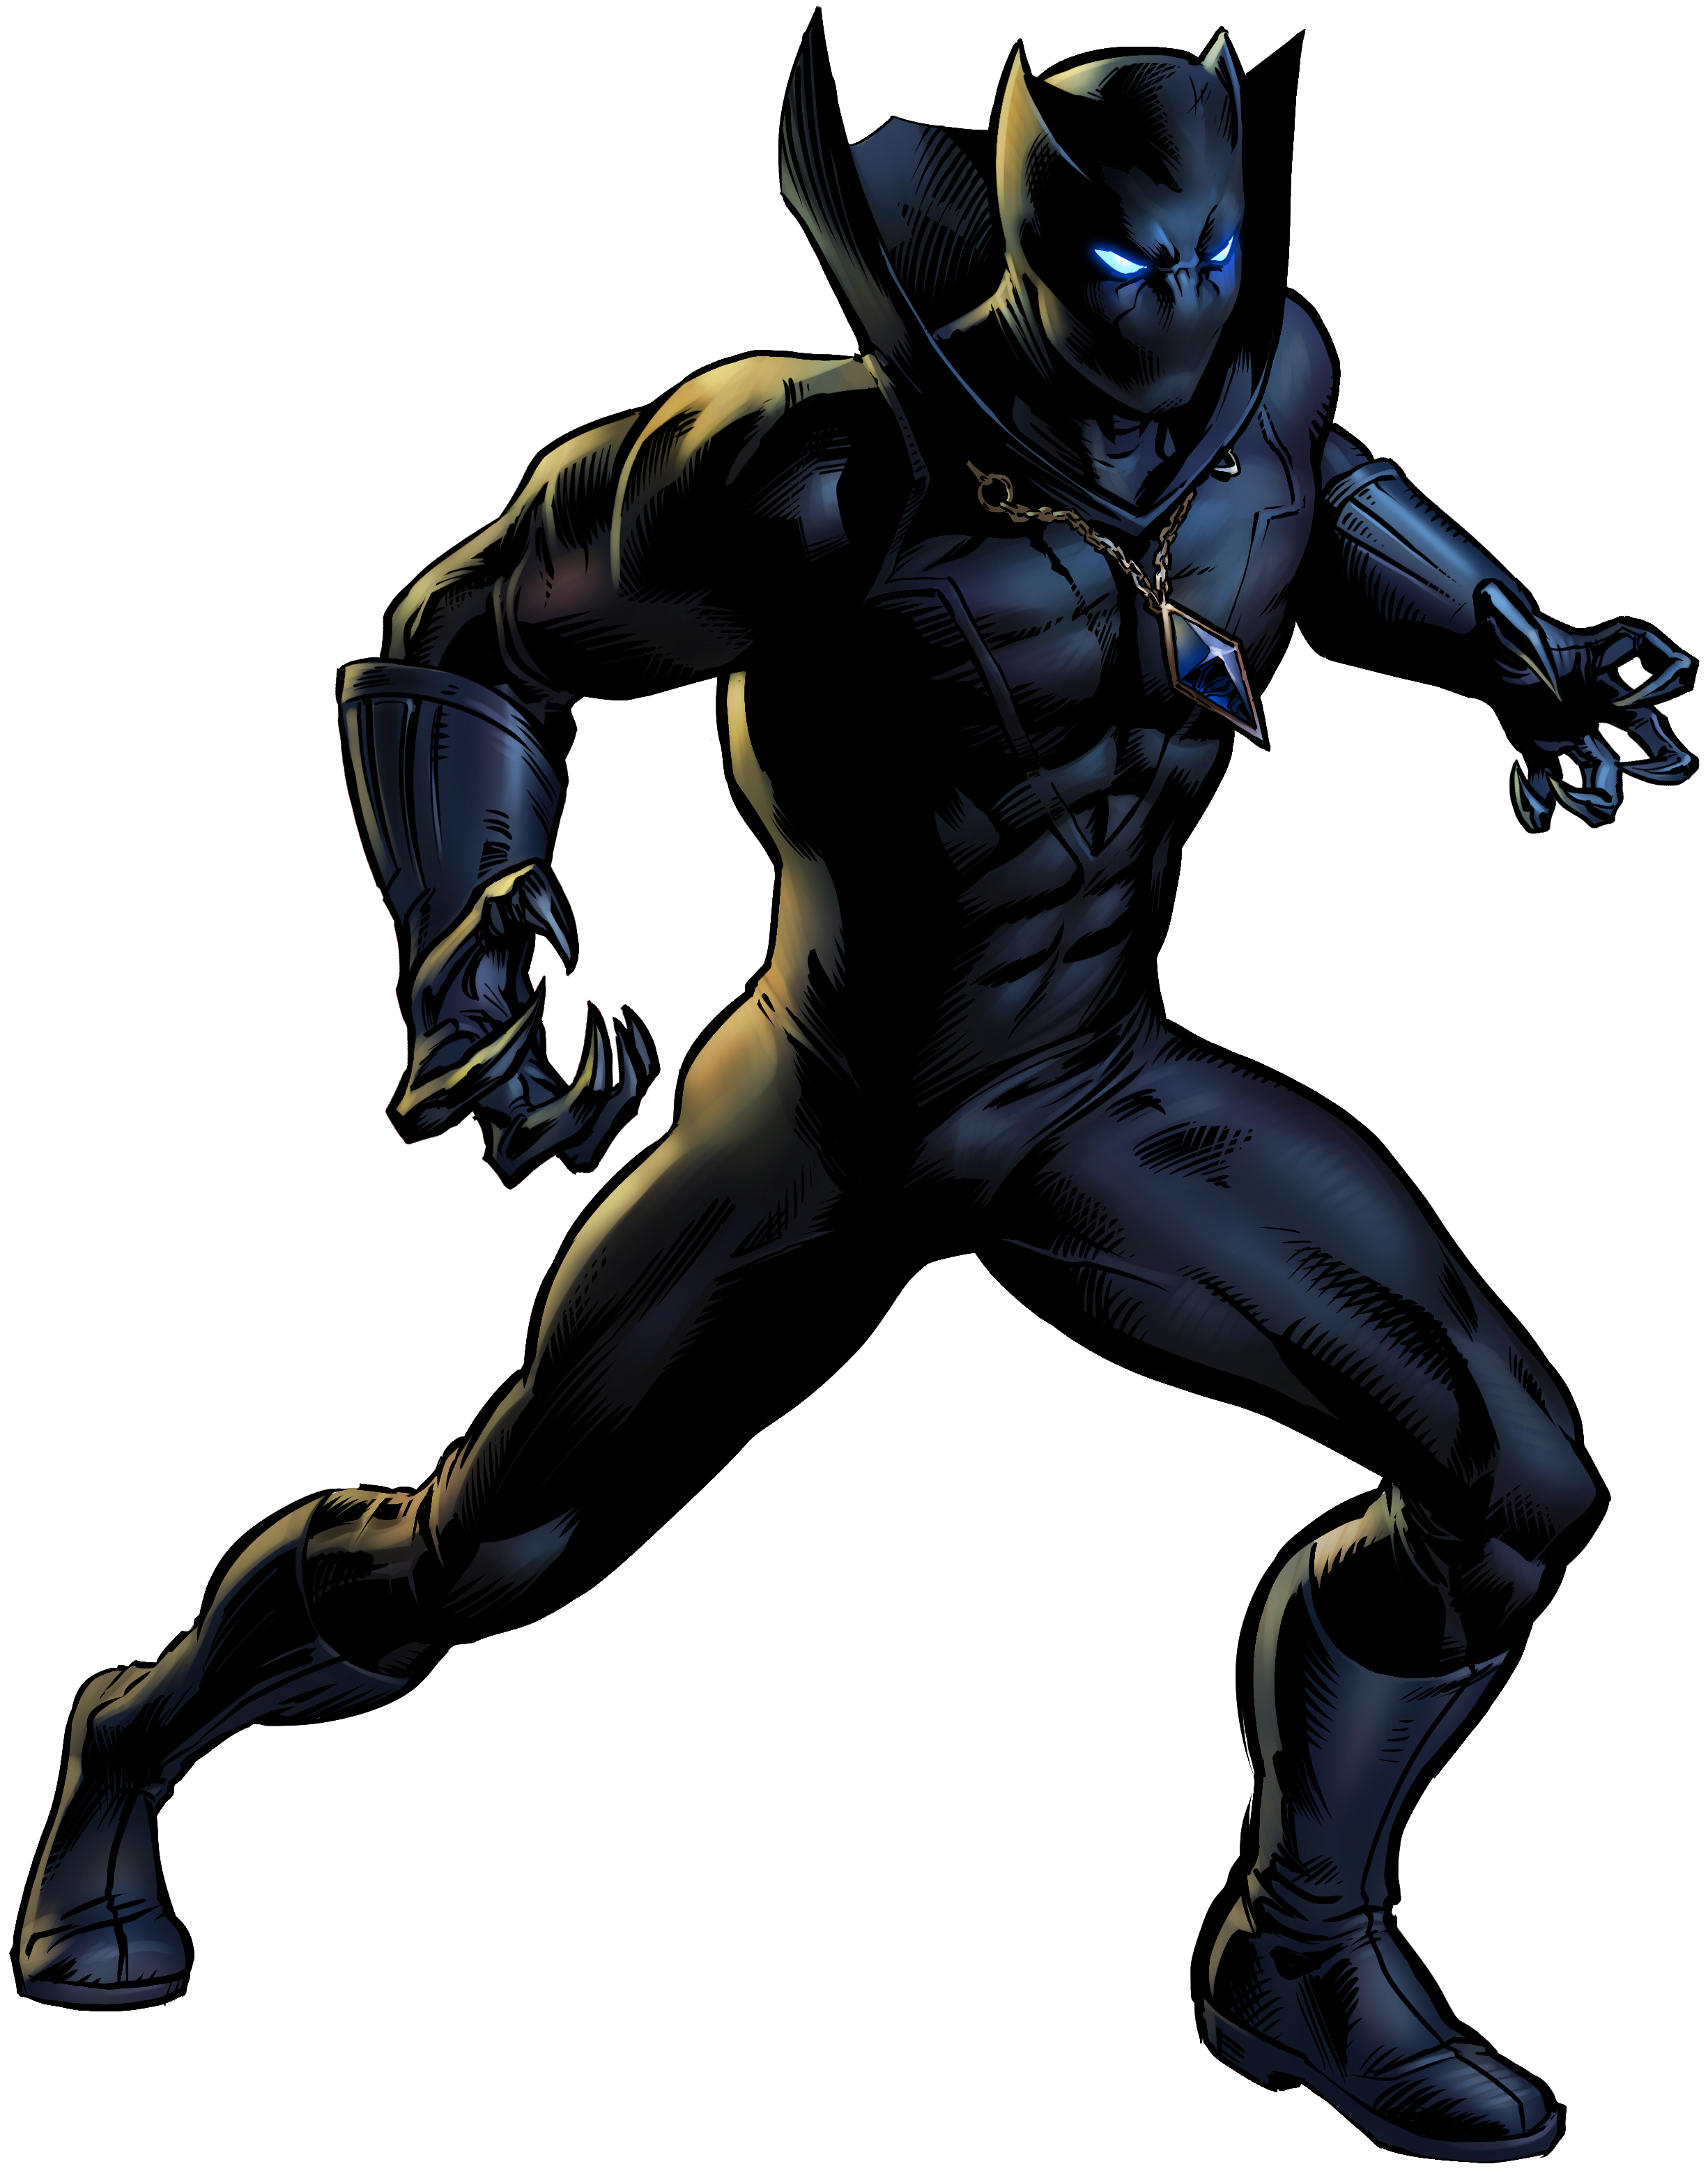 Superhero Panther Character Fictional Book Black Comic PNG Image